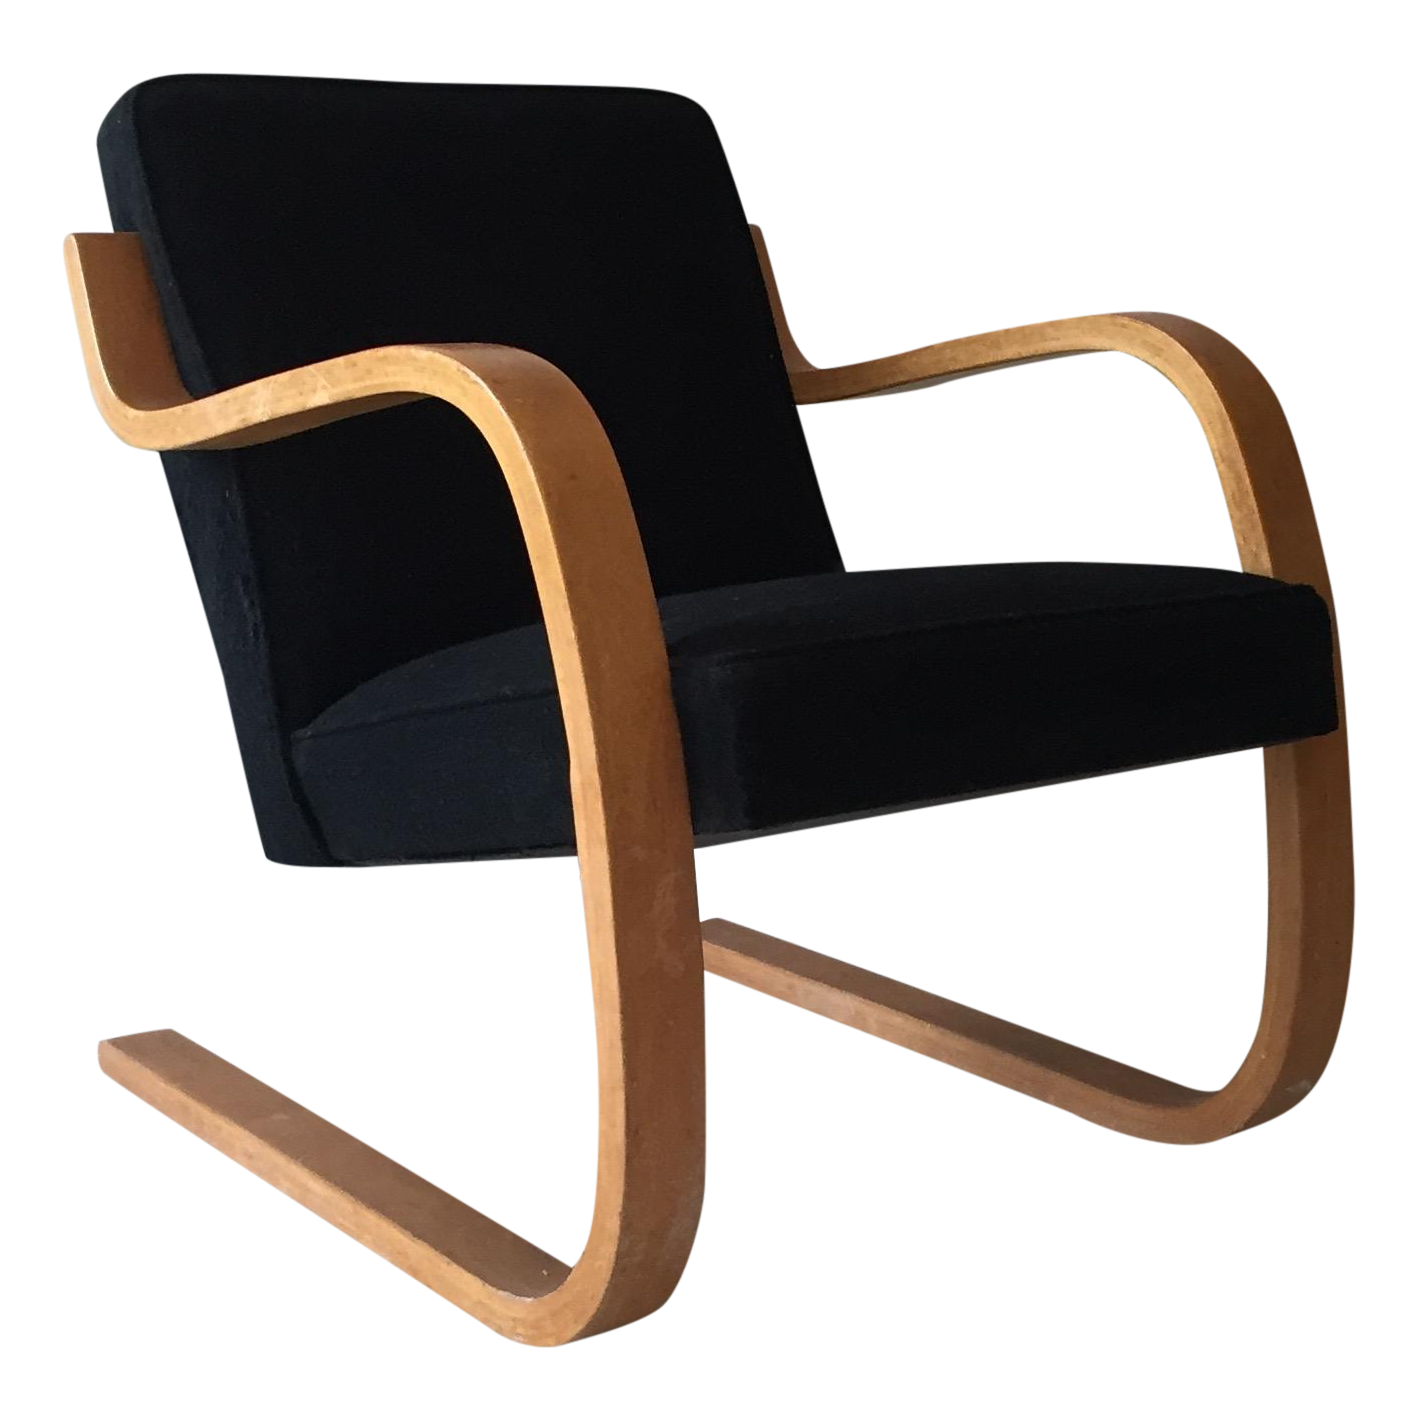 Alvar aalto early model 402 lounge chair chairish for Alvar aalto chaise lounge